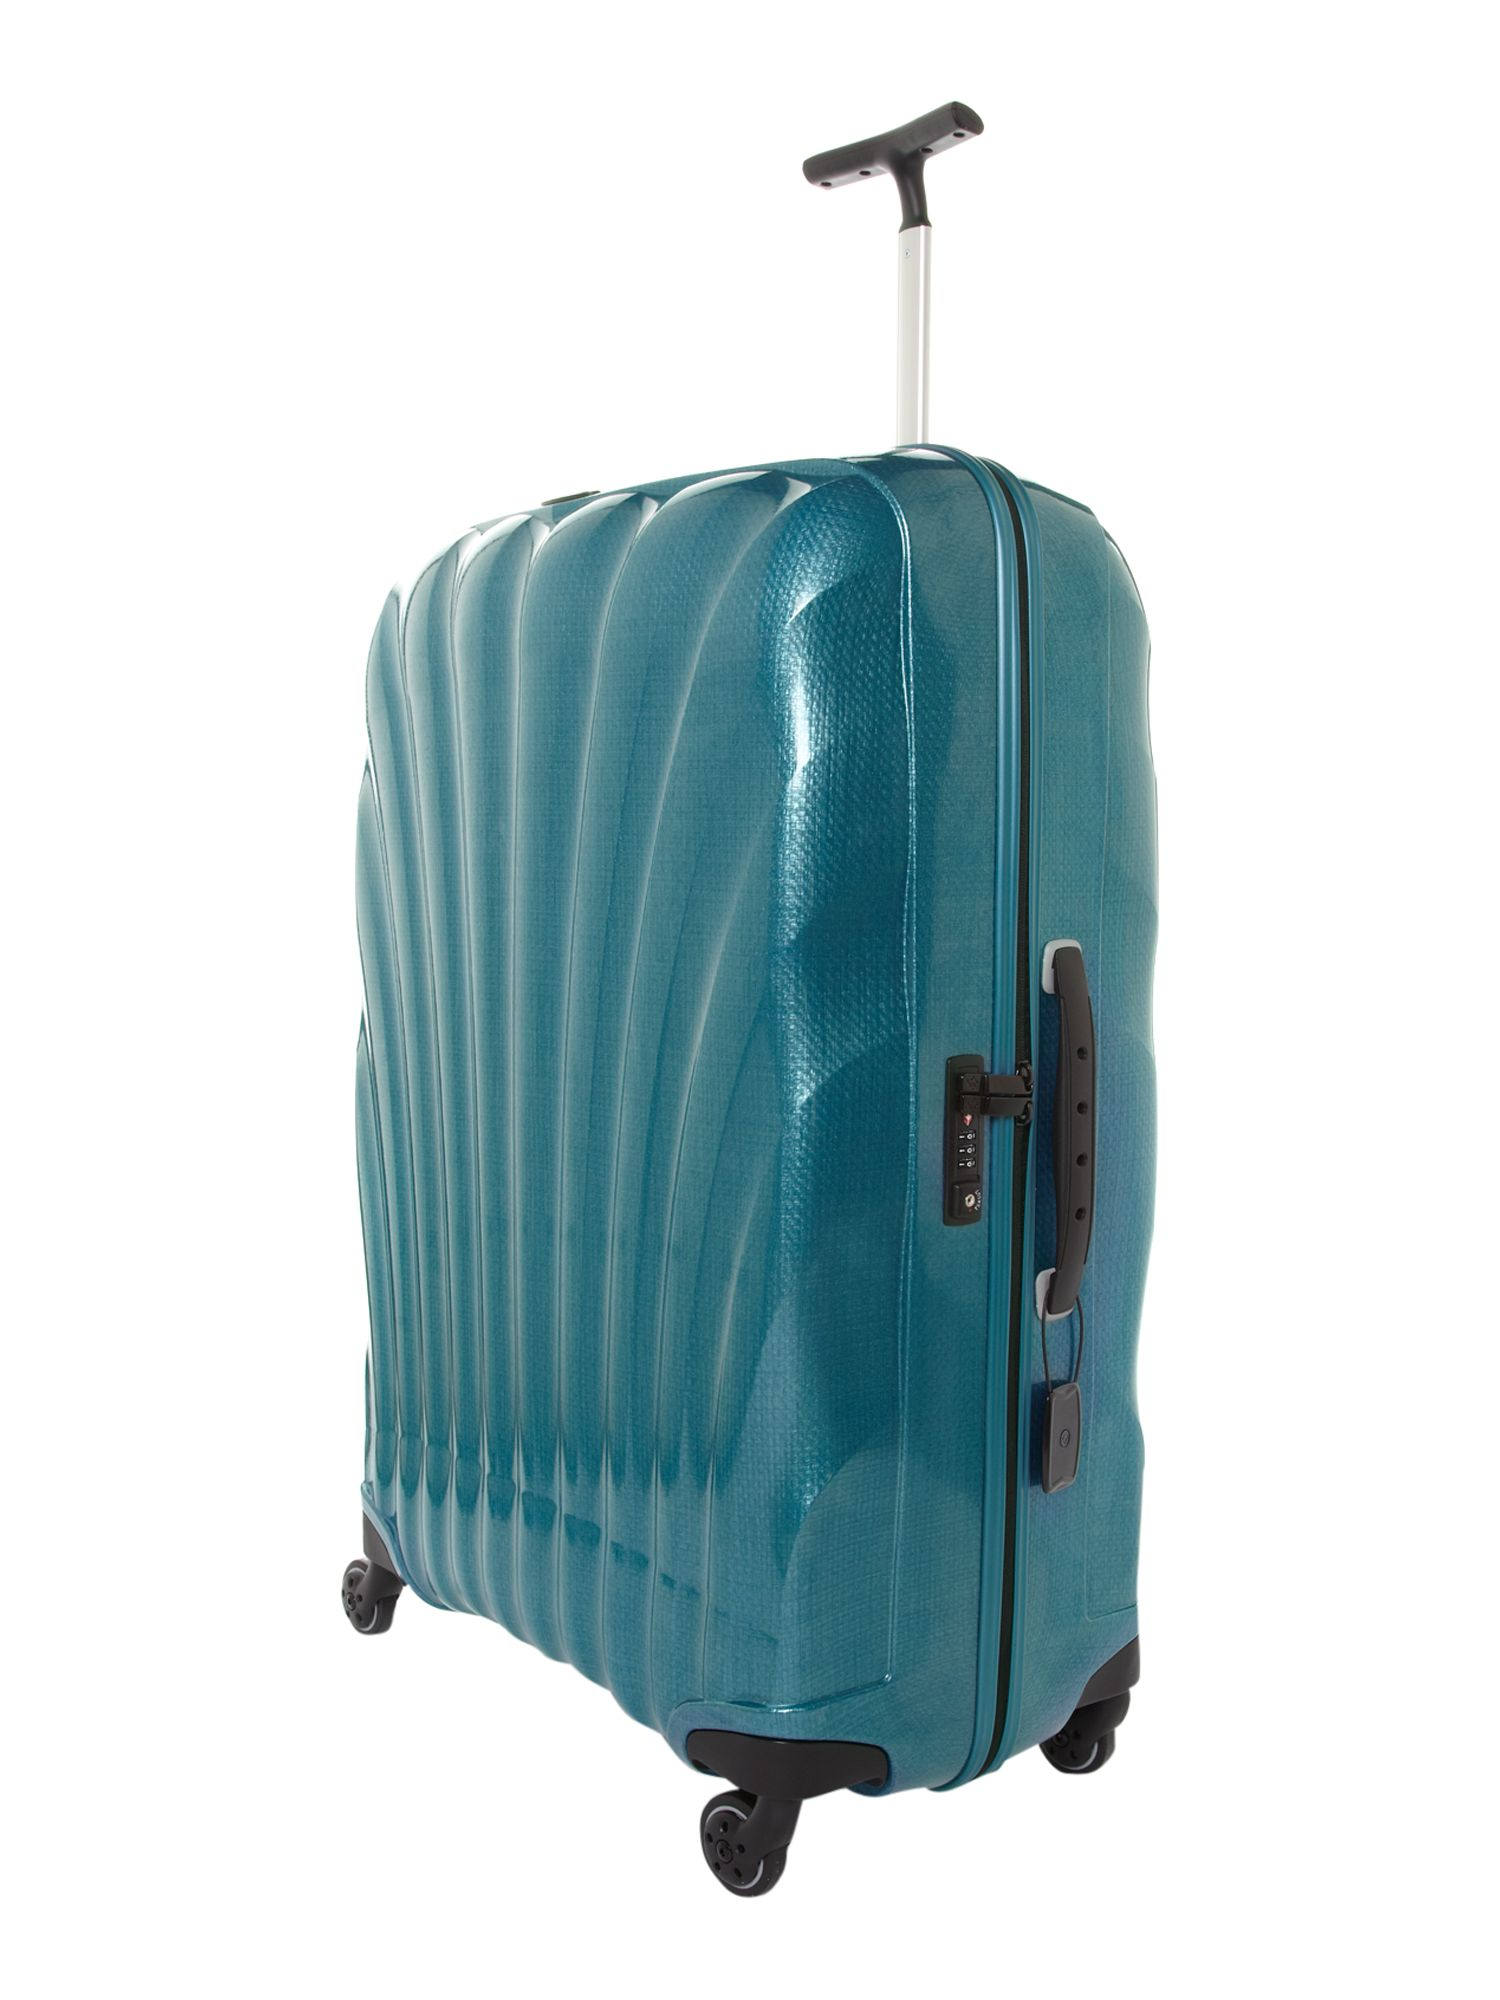 New cosmolite 4-wheel large suitcase